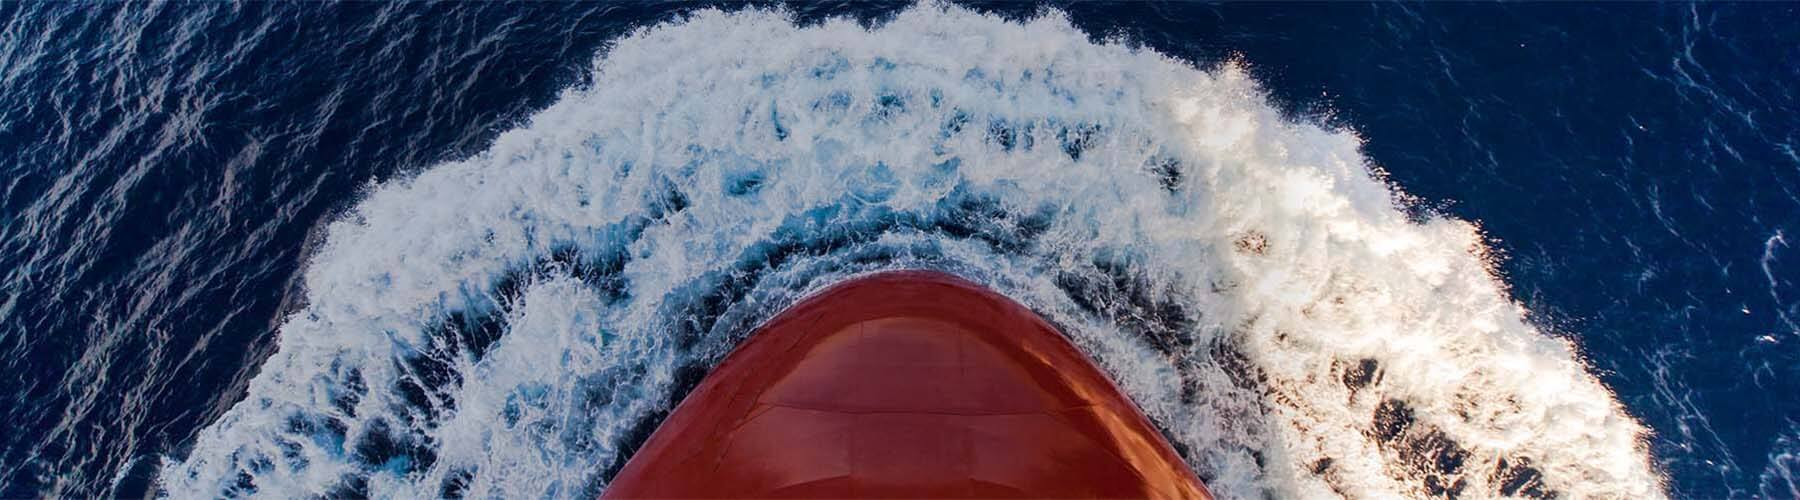 The stern of a shipping vessel, creating a wake as it moves through the ocean.